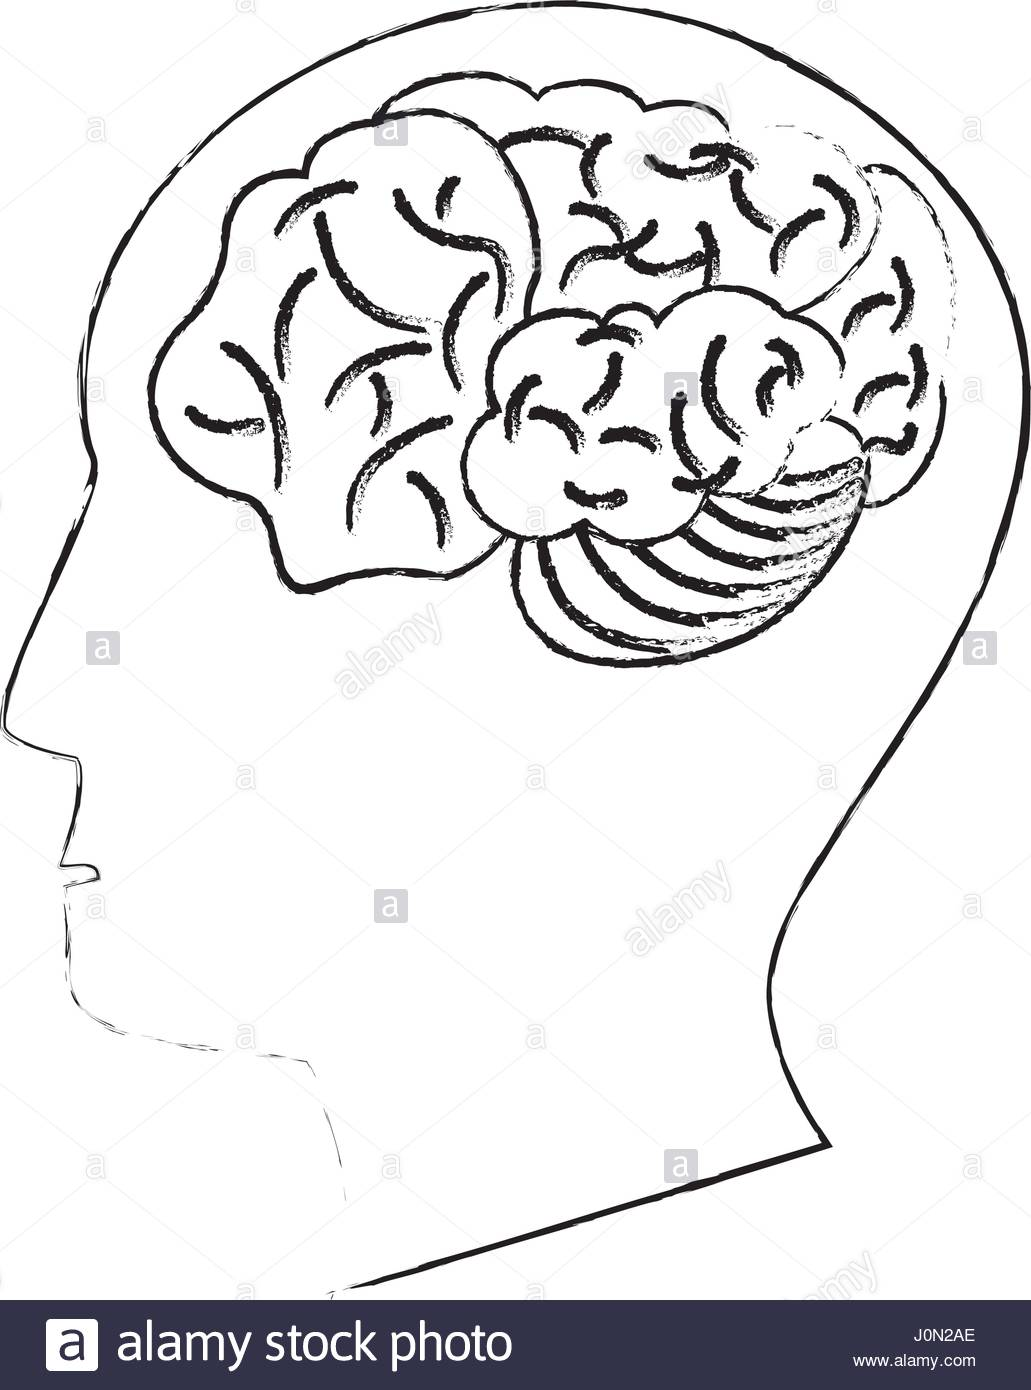 Human Brain Drawing At Free For Personal Use Vector Dry Battery Diagram Stock Photos Bigstock 1031x1390 Head Thinking Idea Sketch Art